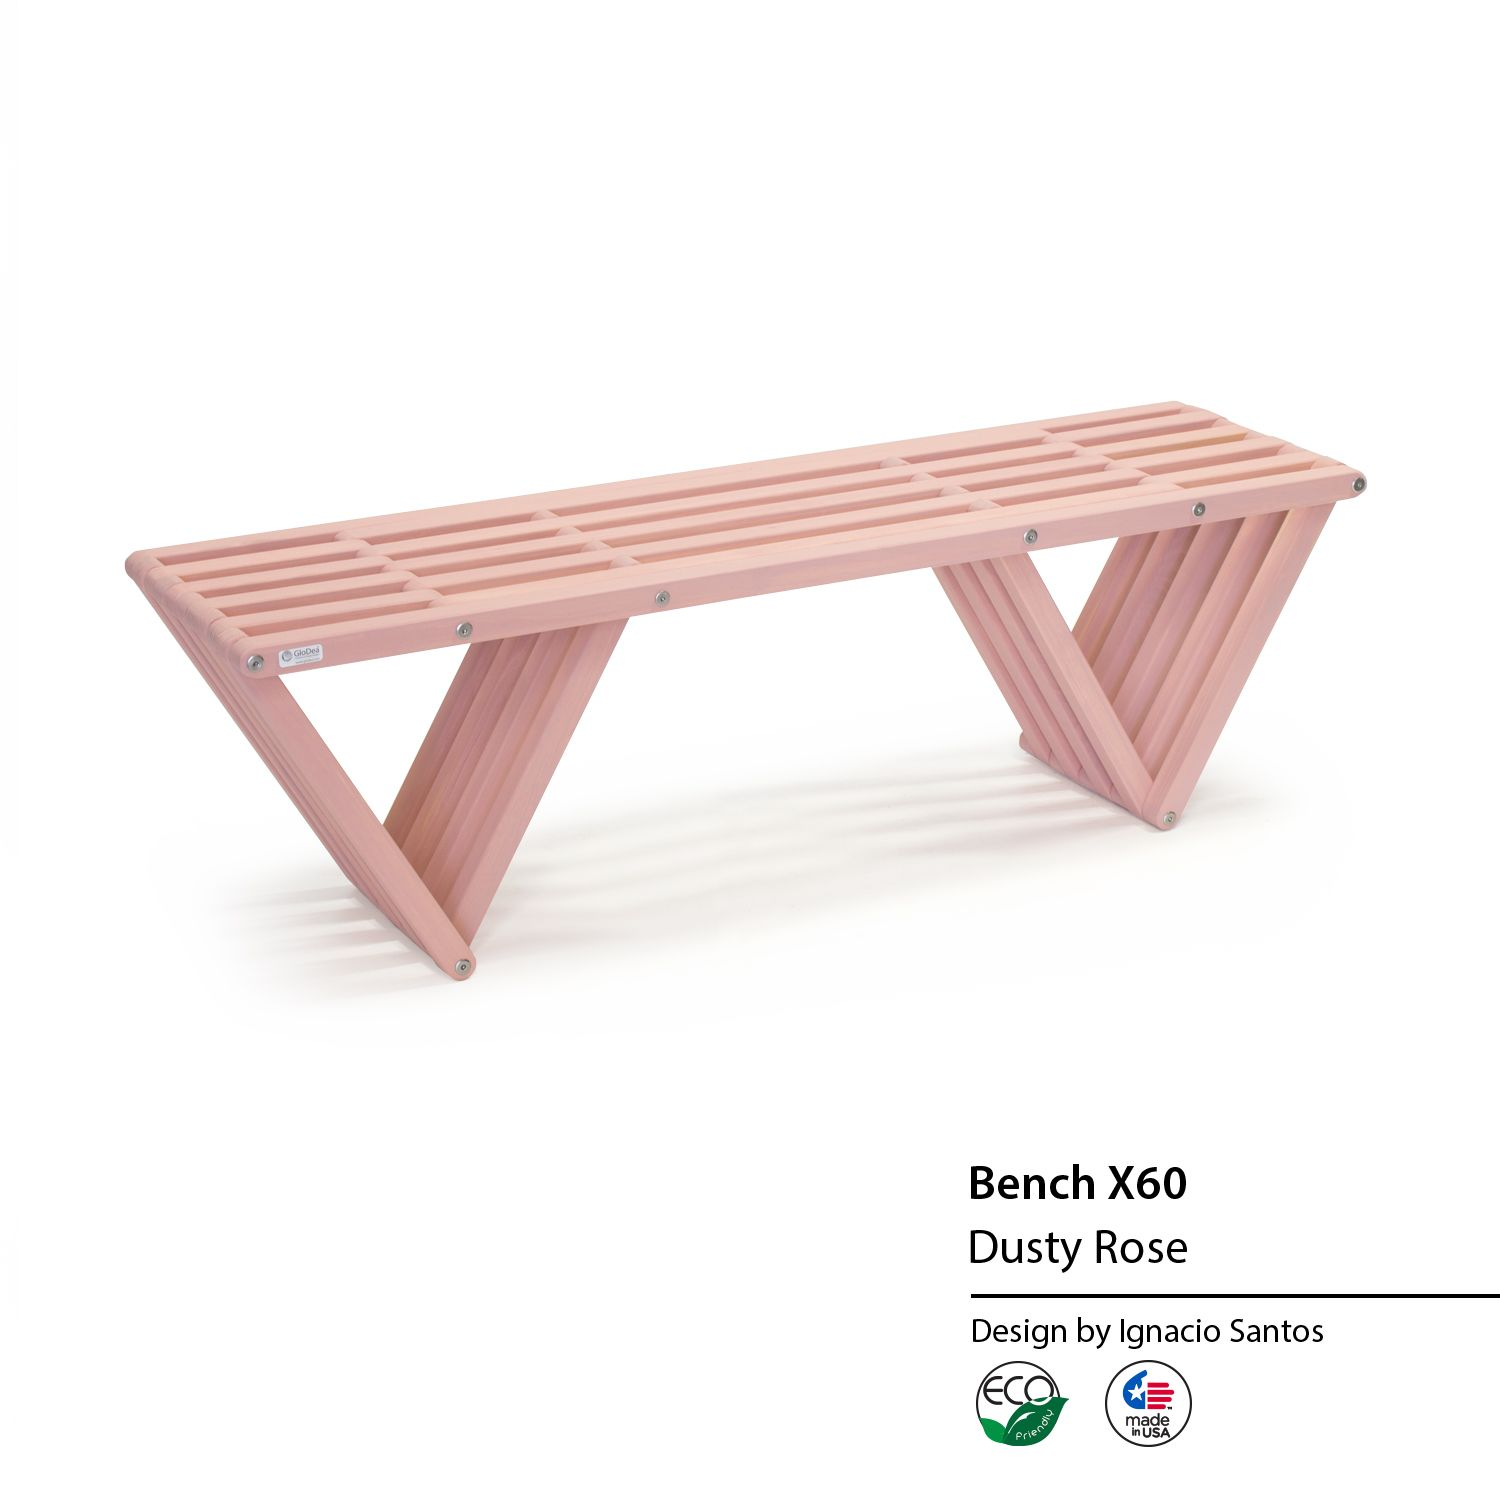 All American Furniture Jacksonville Fl: The Bench X60 Is An Eco-friendly Solid Wood Bench Designed